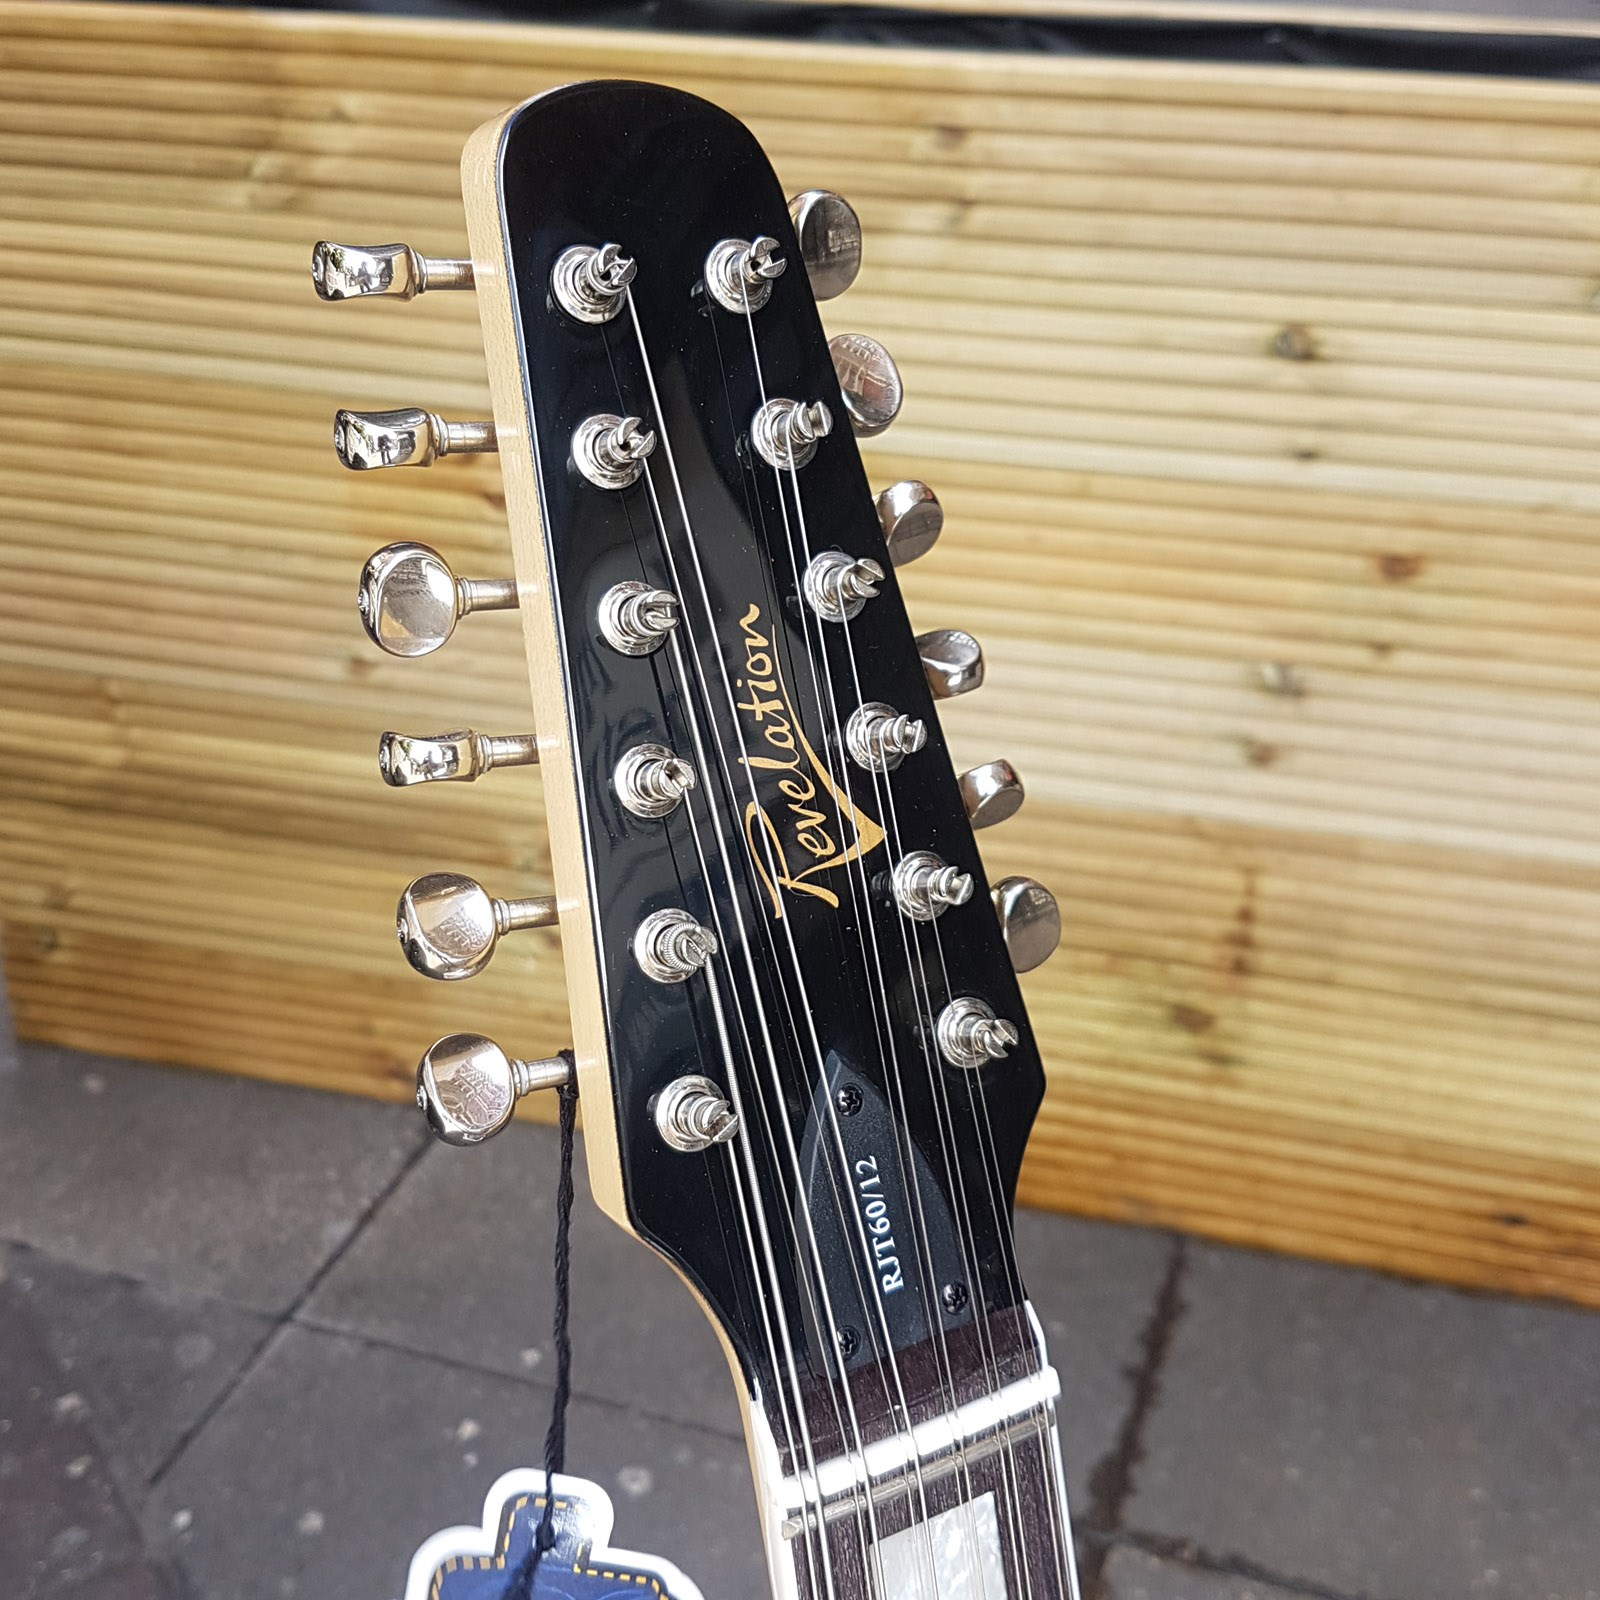 RJT 60 12 string sunburst